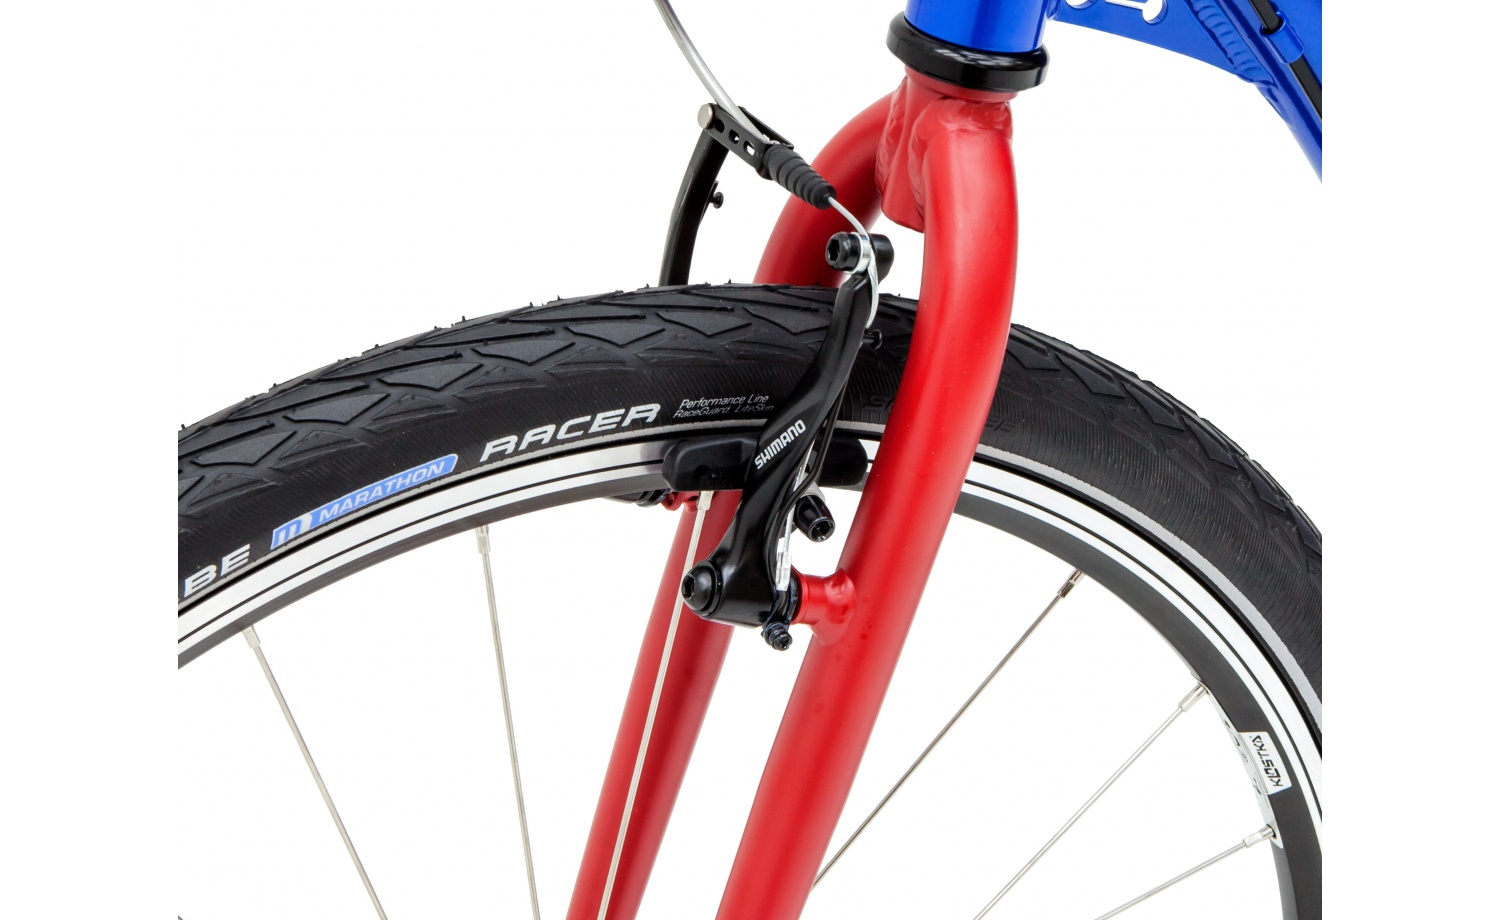 Footbike KOSTKA TOUR MAX (G5) - 20 years limited edition